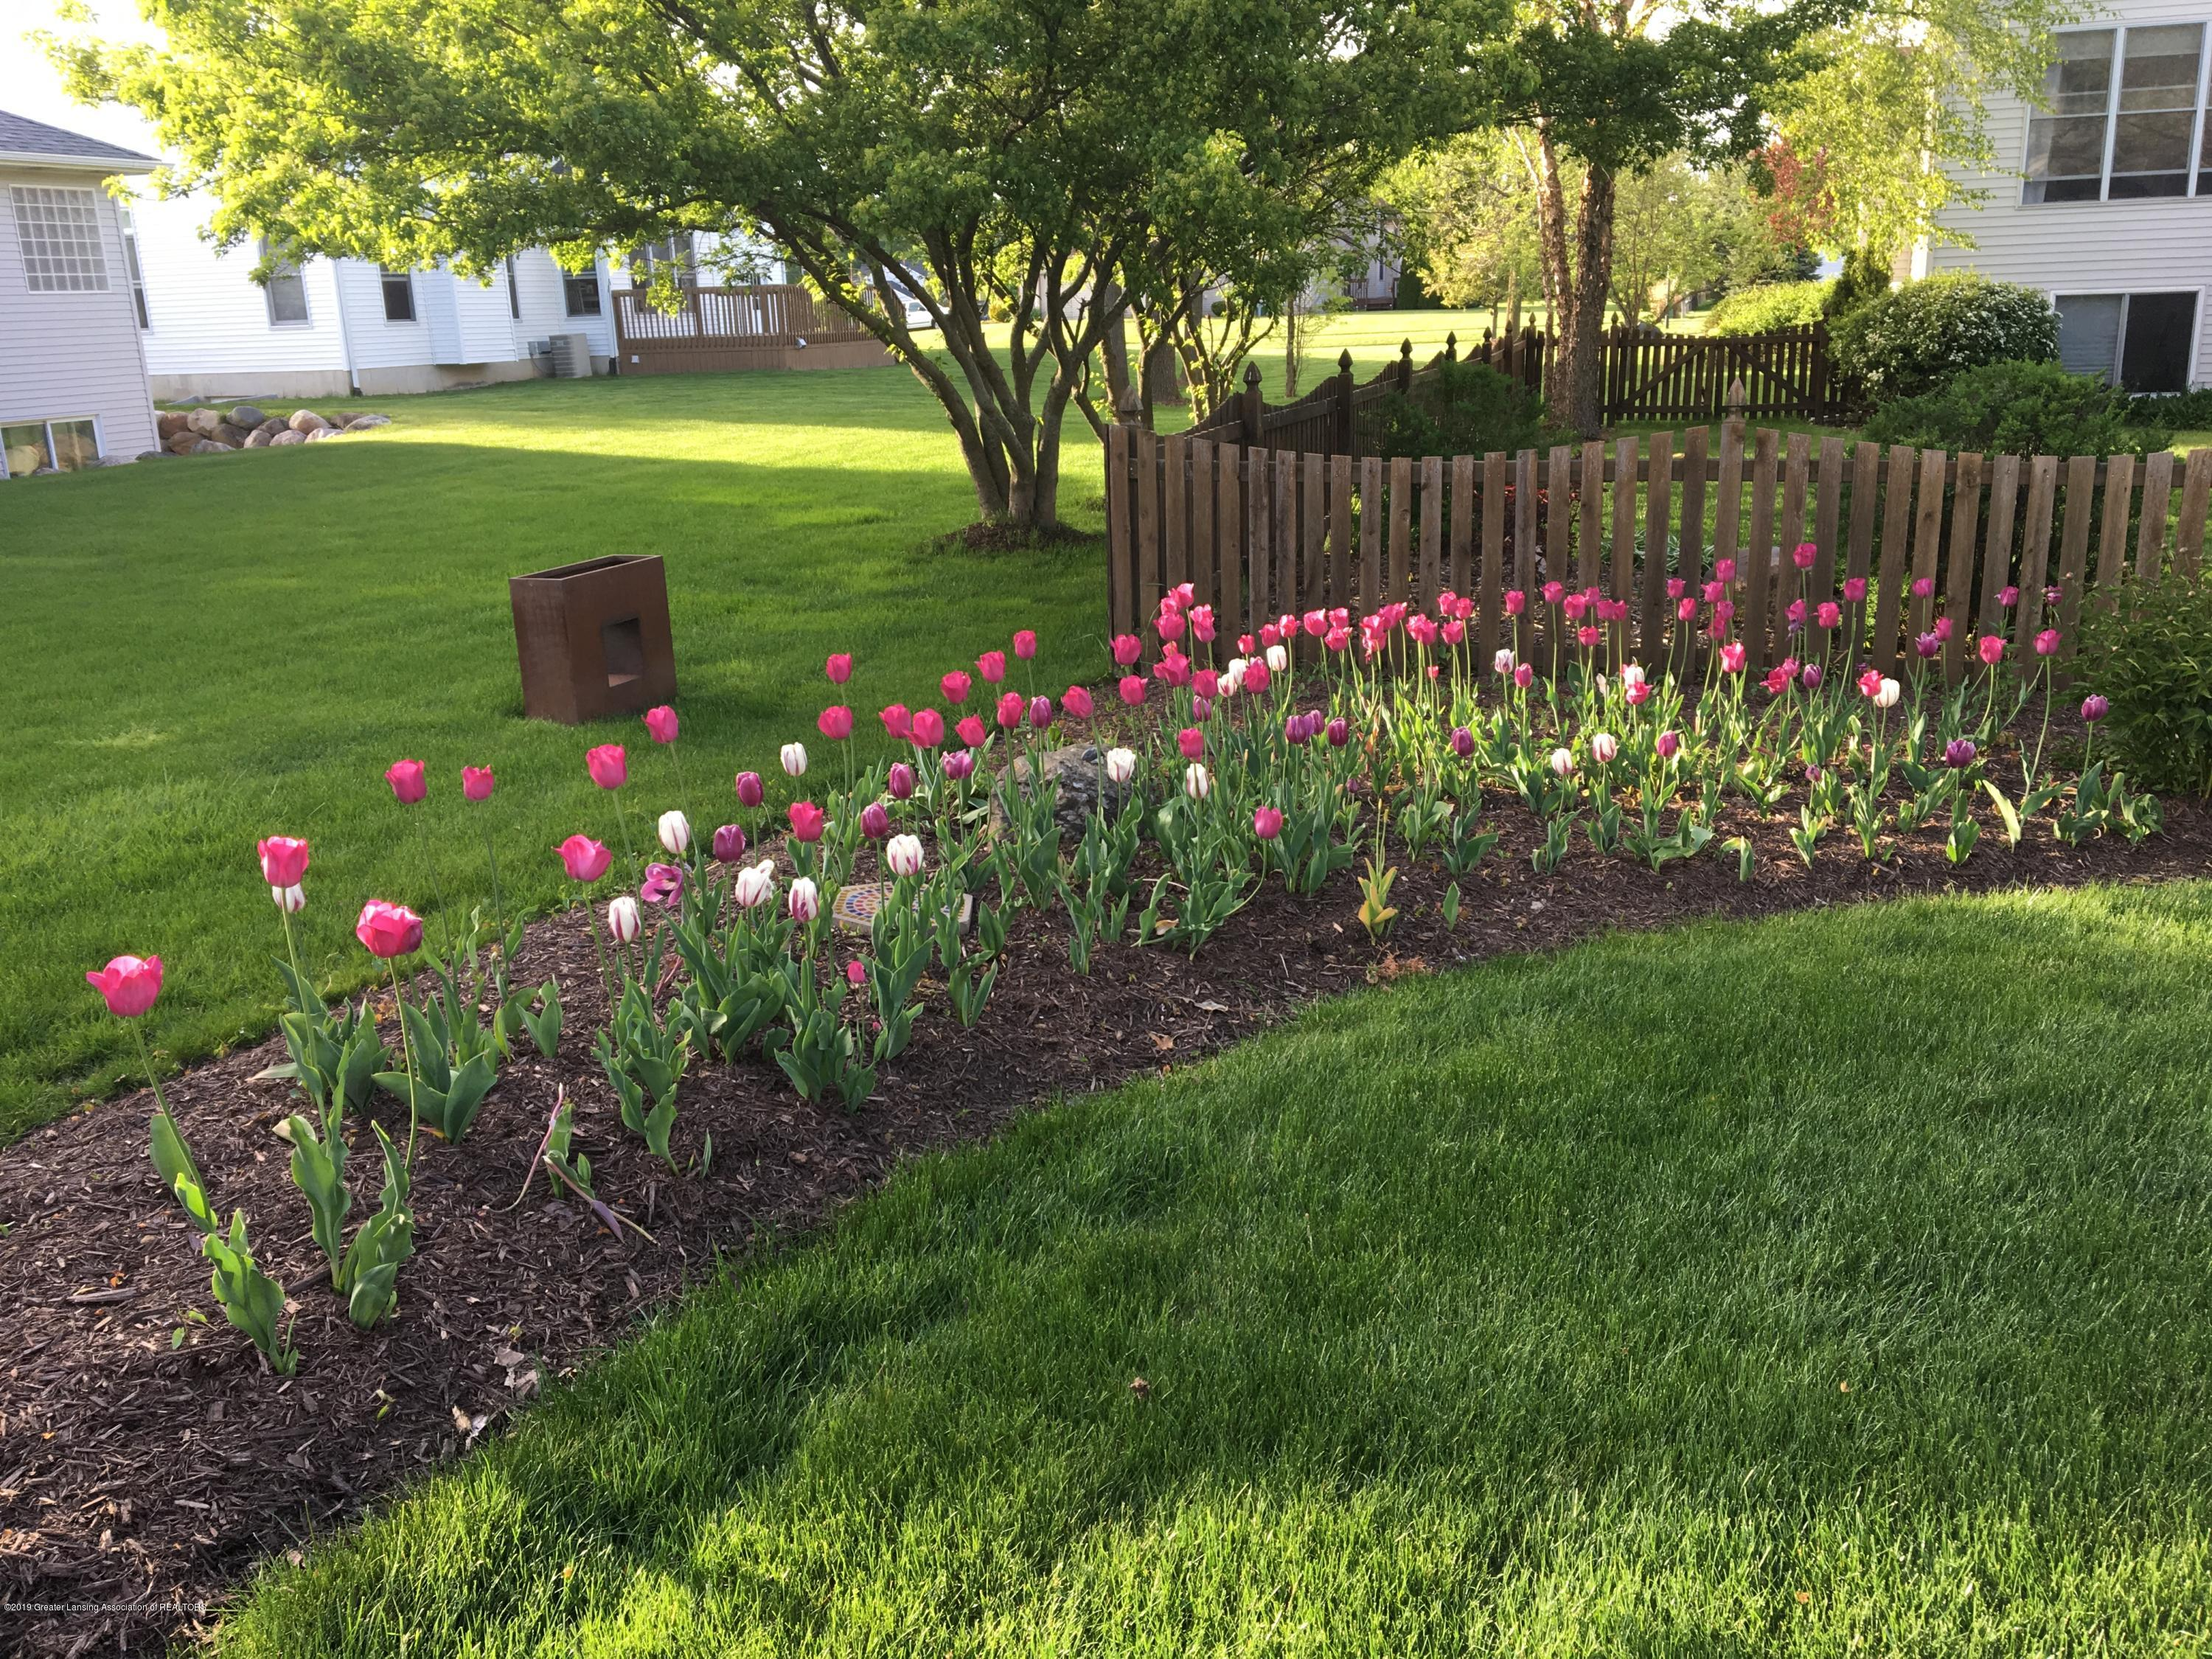 7387 Mallow Ln - 2017 05-15 Tulips in Garden - 47